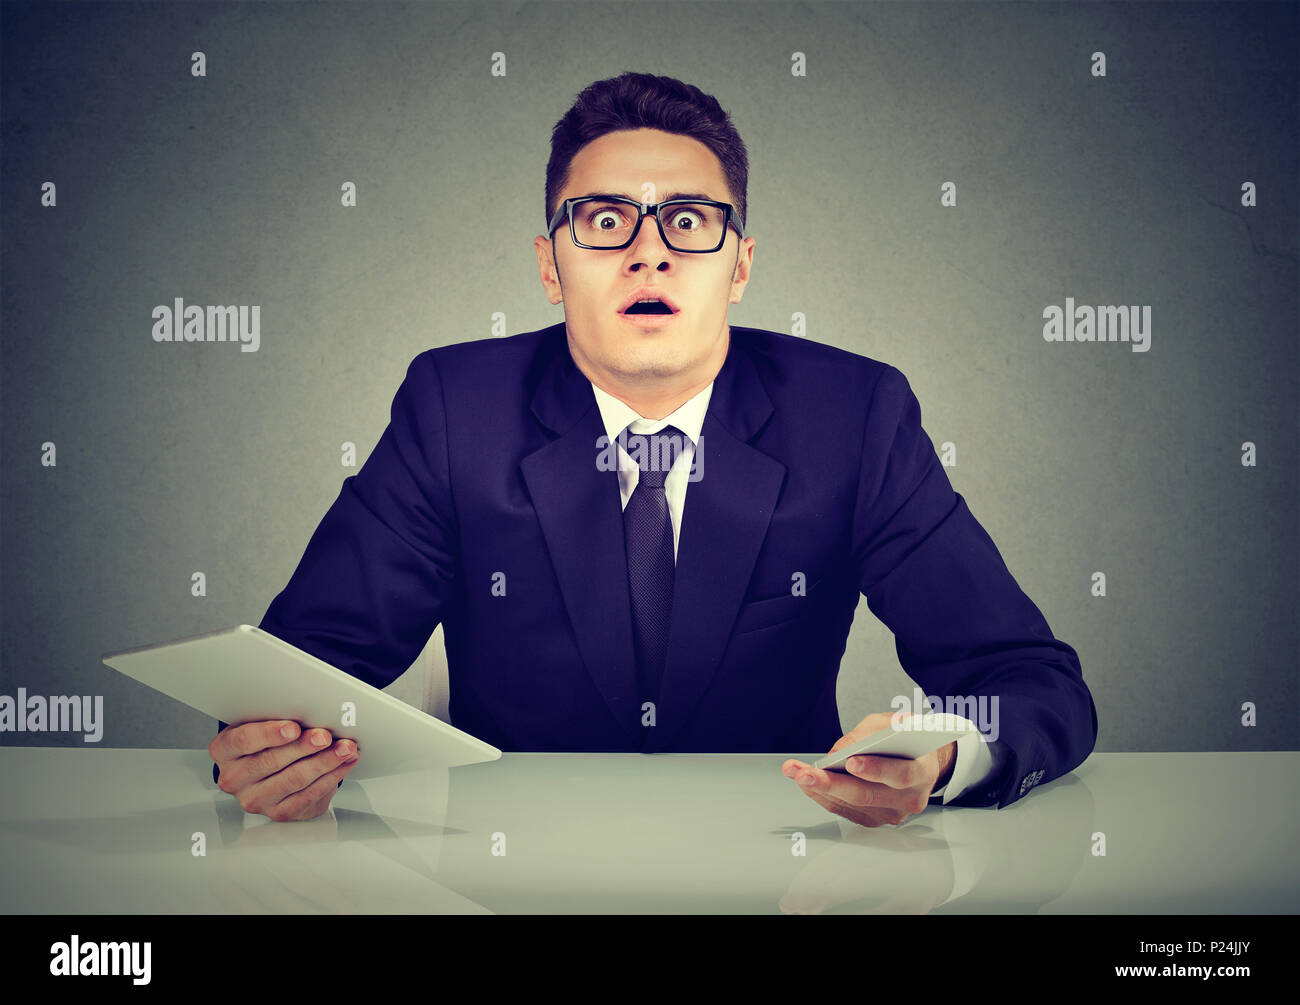 Busy confused employee with smartphone and tablet computer - Stock Image